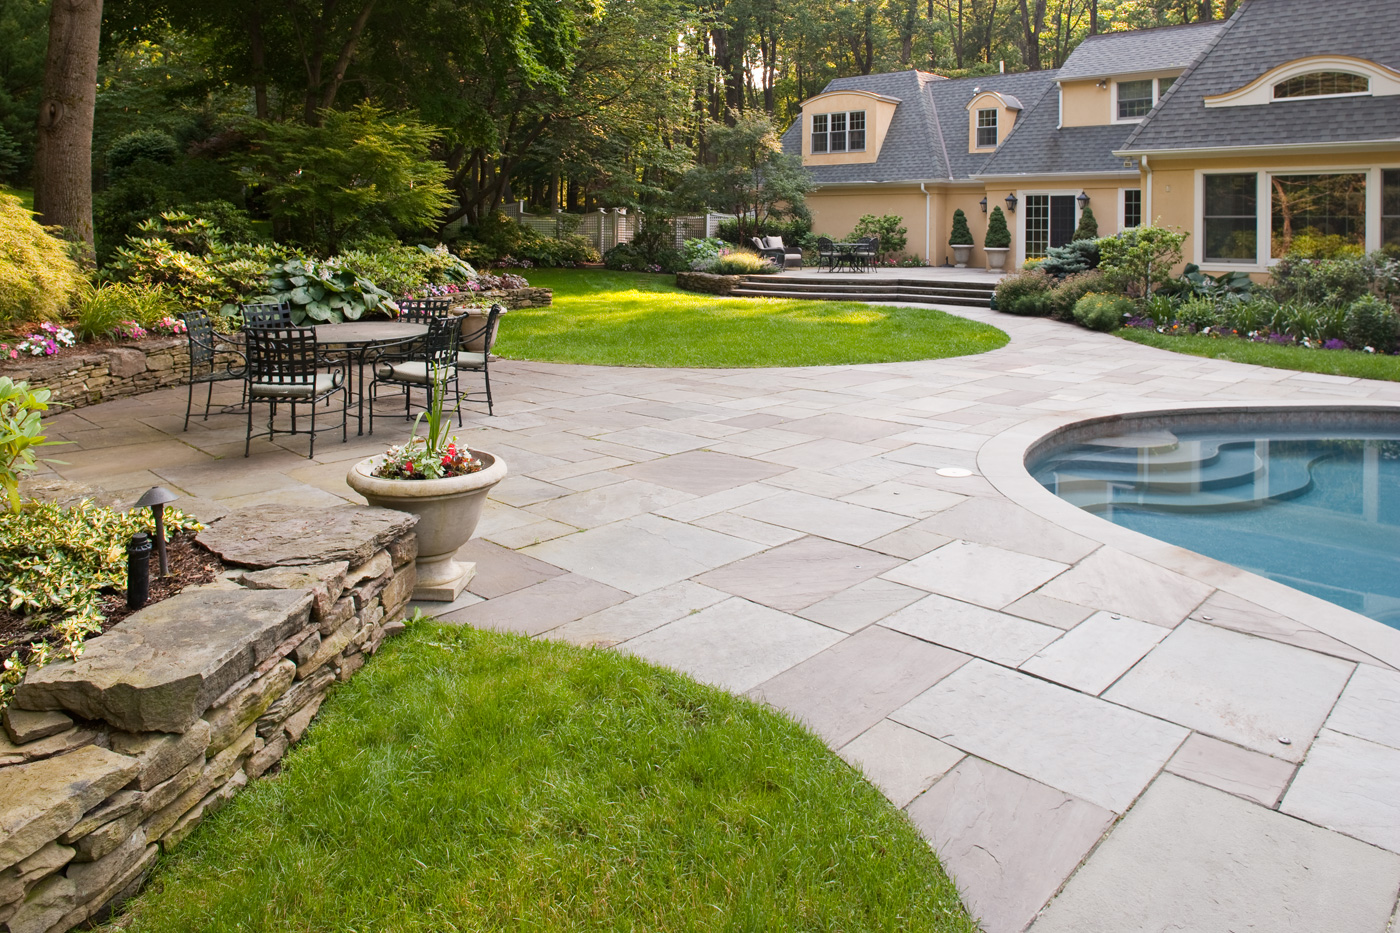 bluestone-patio-pool-1400x933 - Cording Landscape Design